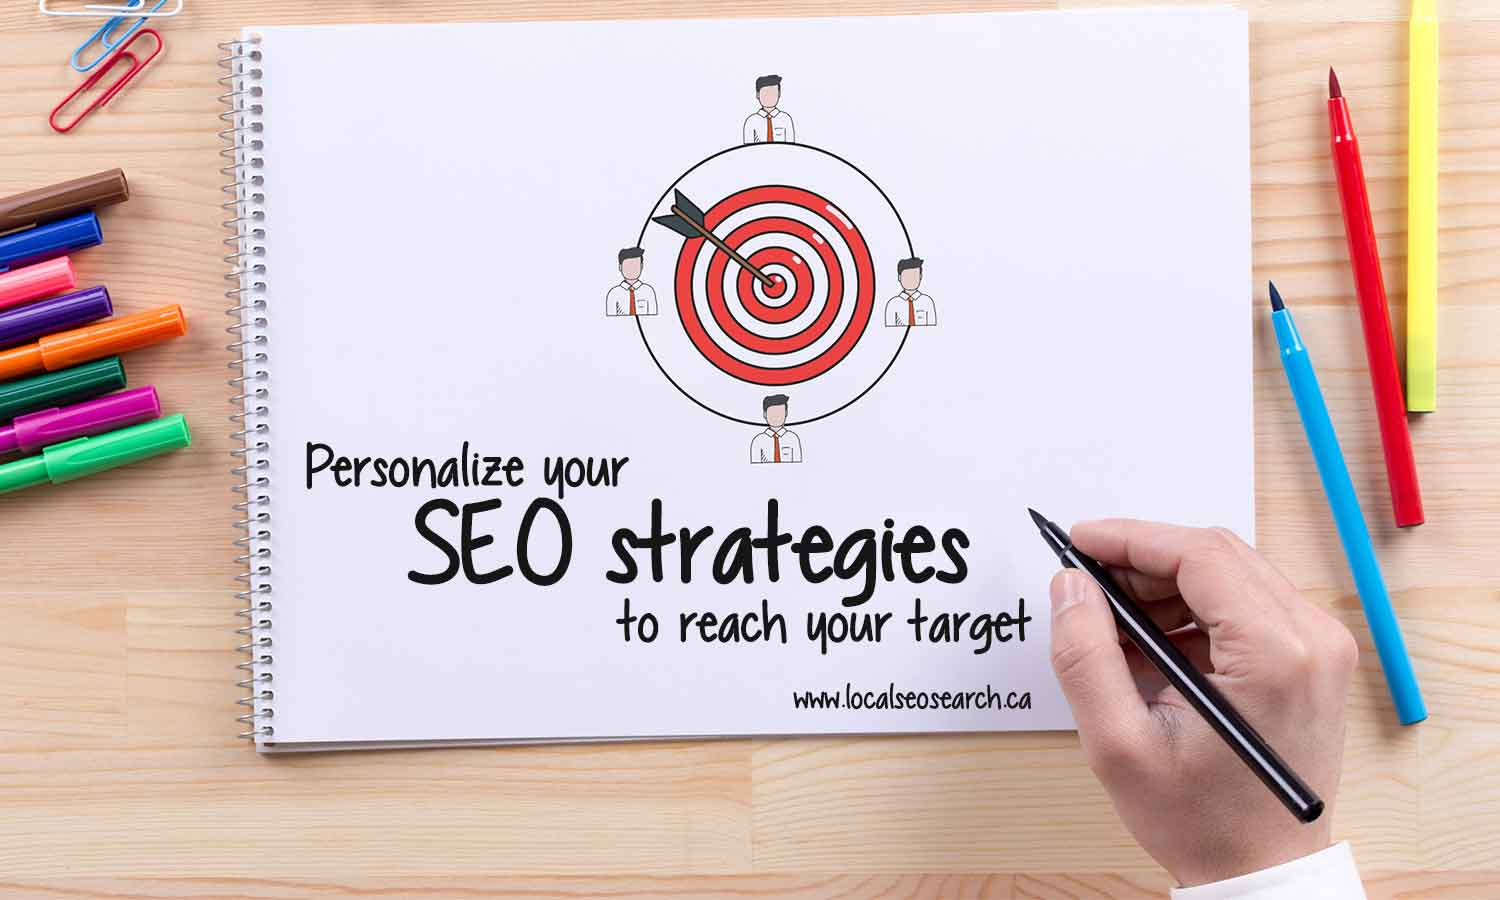 Personalize SEO strategies reach target